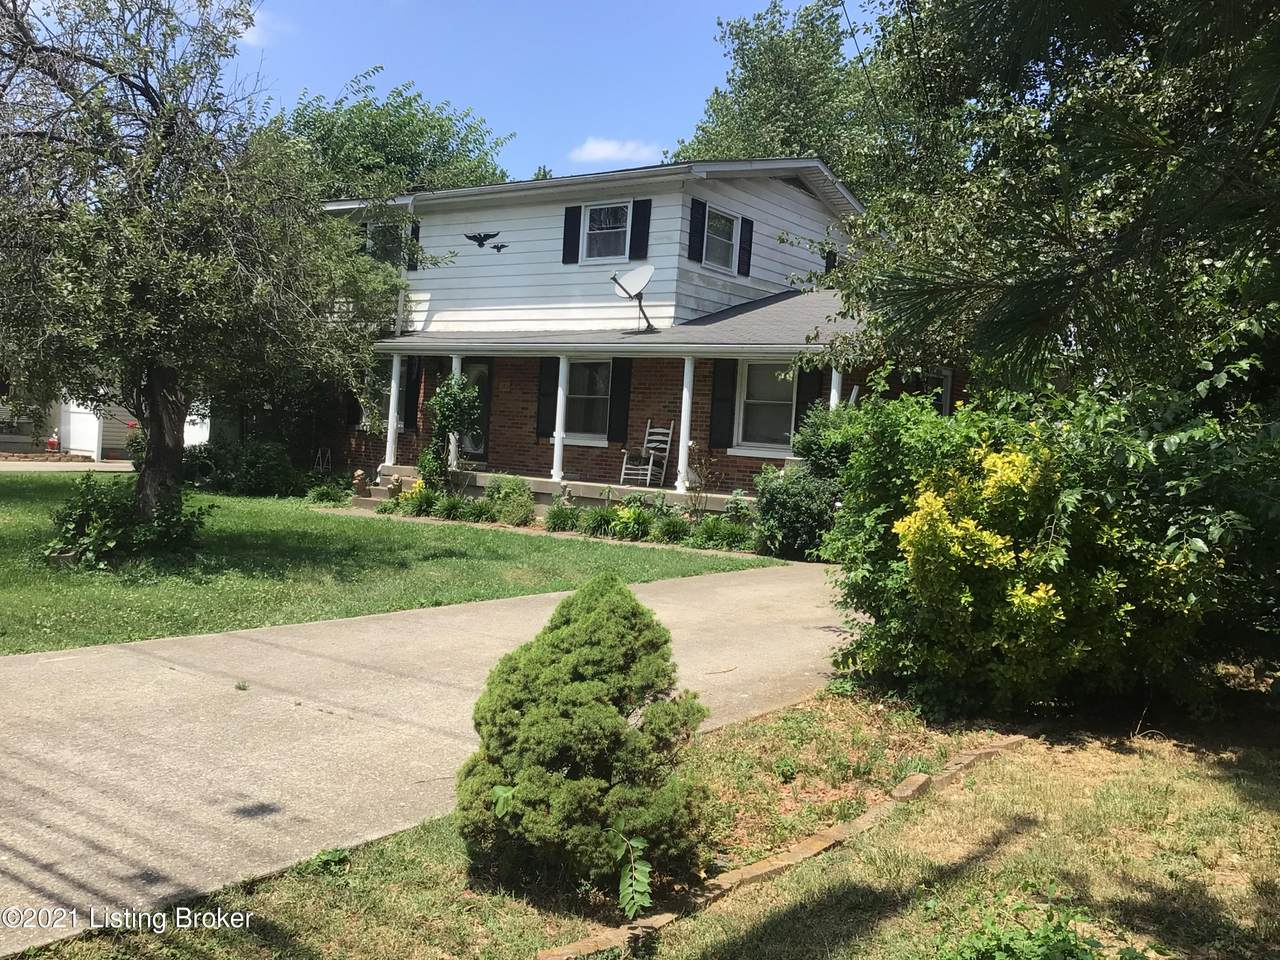 186 Overdale Dr - Photo 1